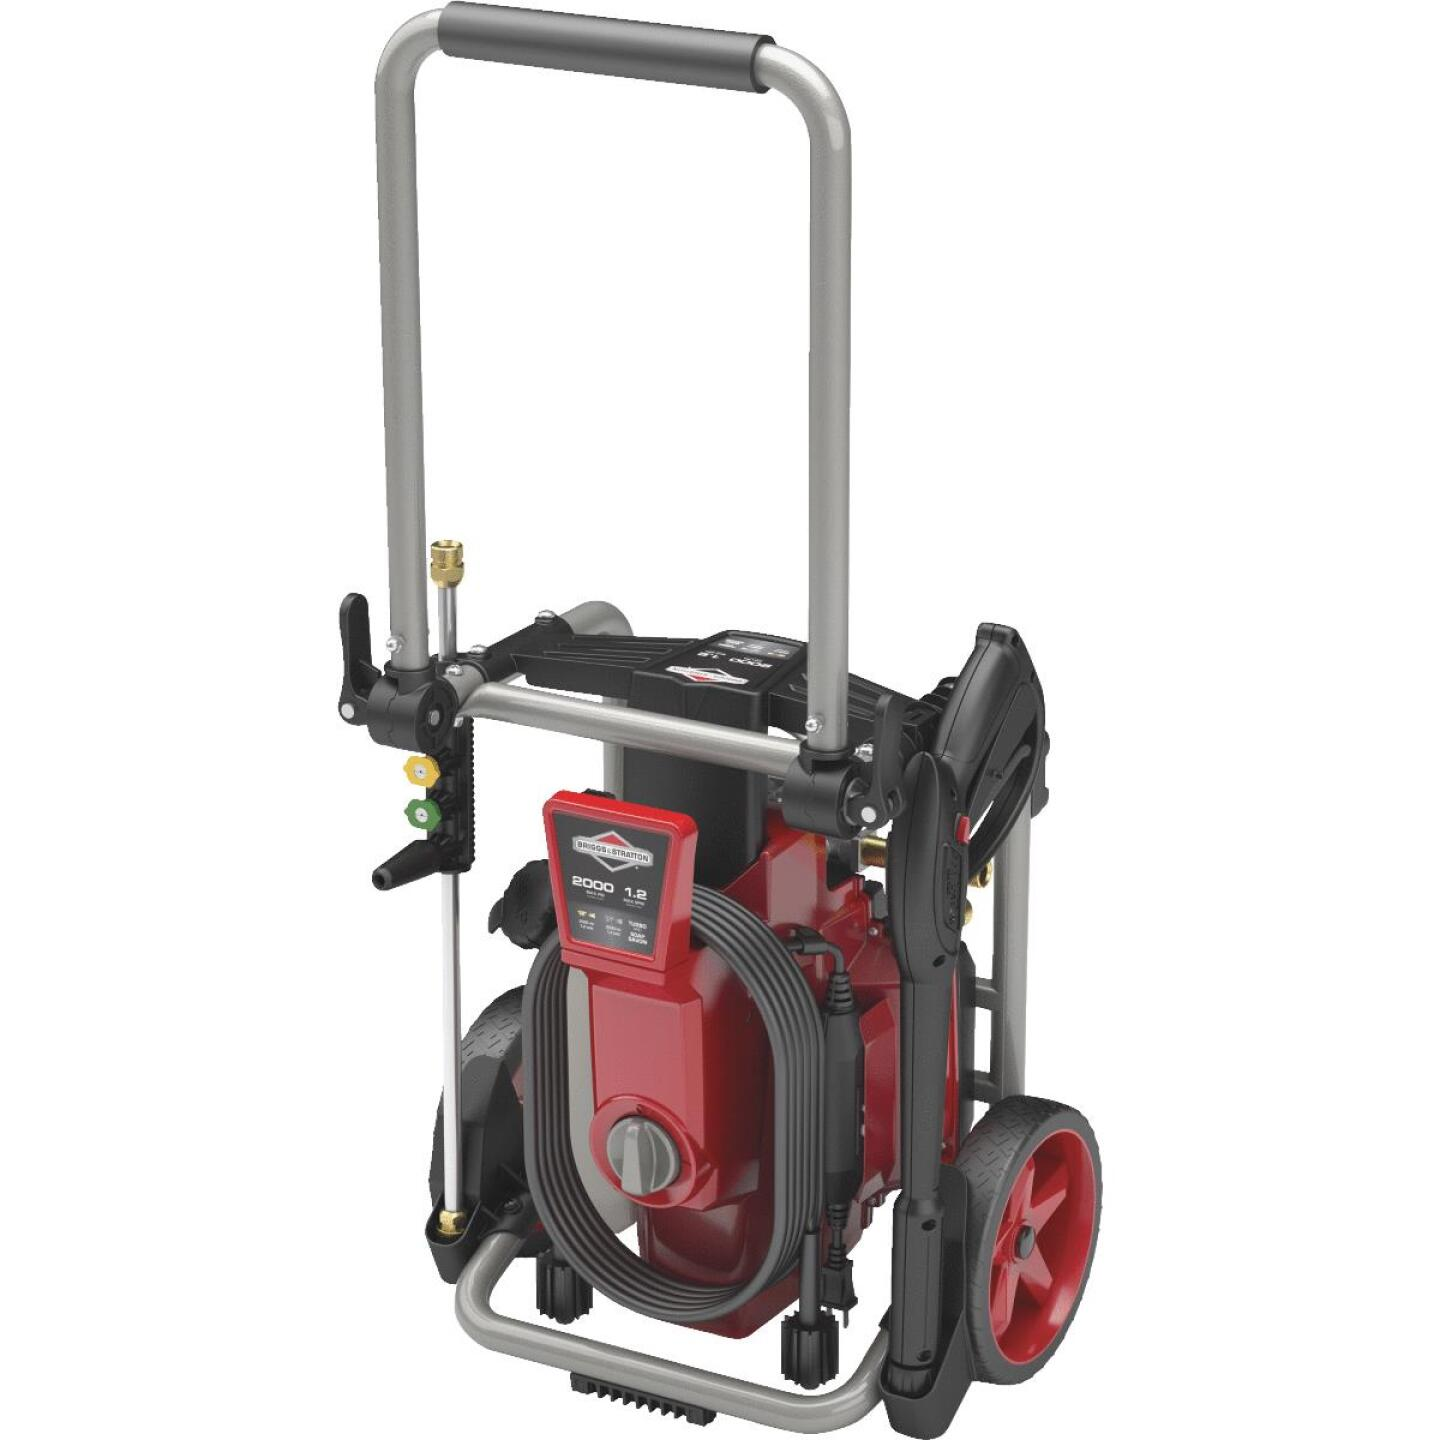 Briggs & Stratton 2000 psi 1.2 GPM Cold Water Electric Pressure Washer Image 1